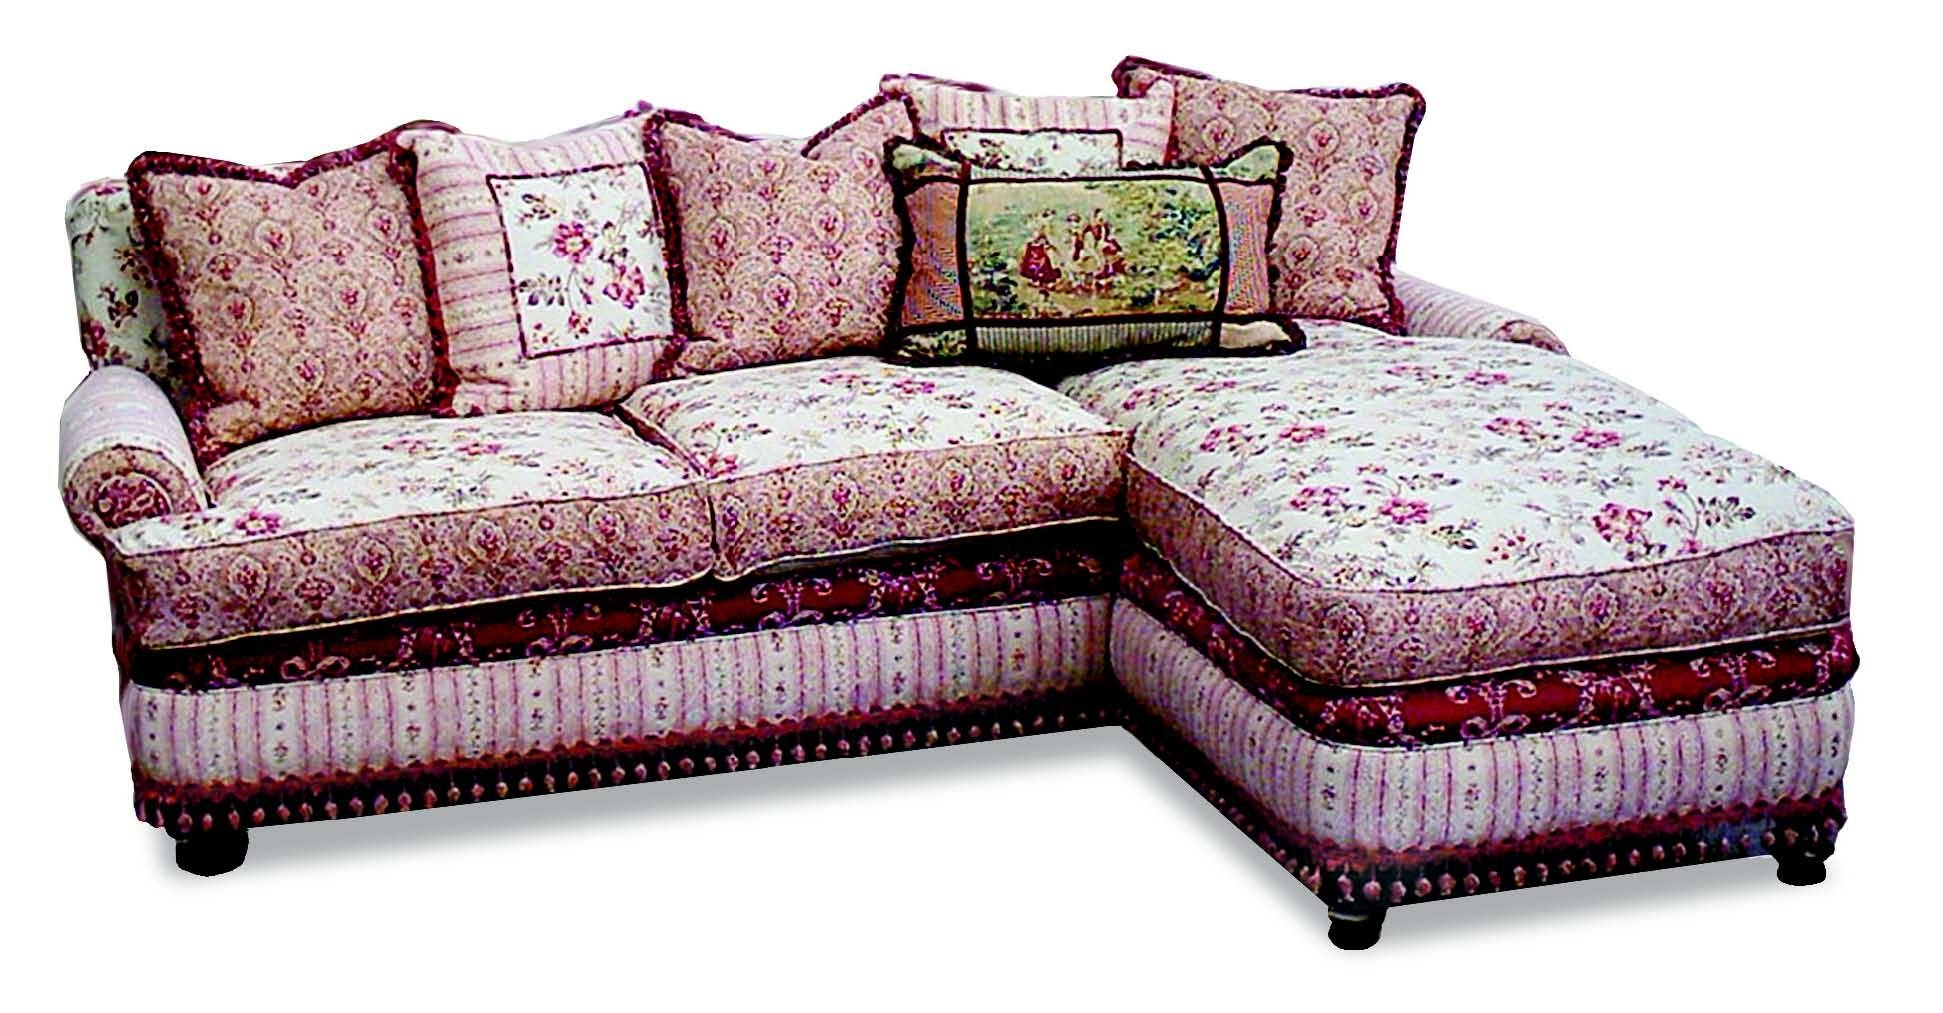 Sofa Shabby Chic 30 Inspirations Of Shabby Chic Sofa